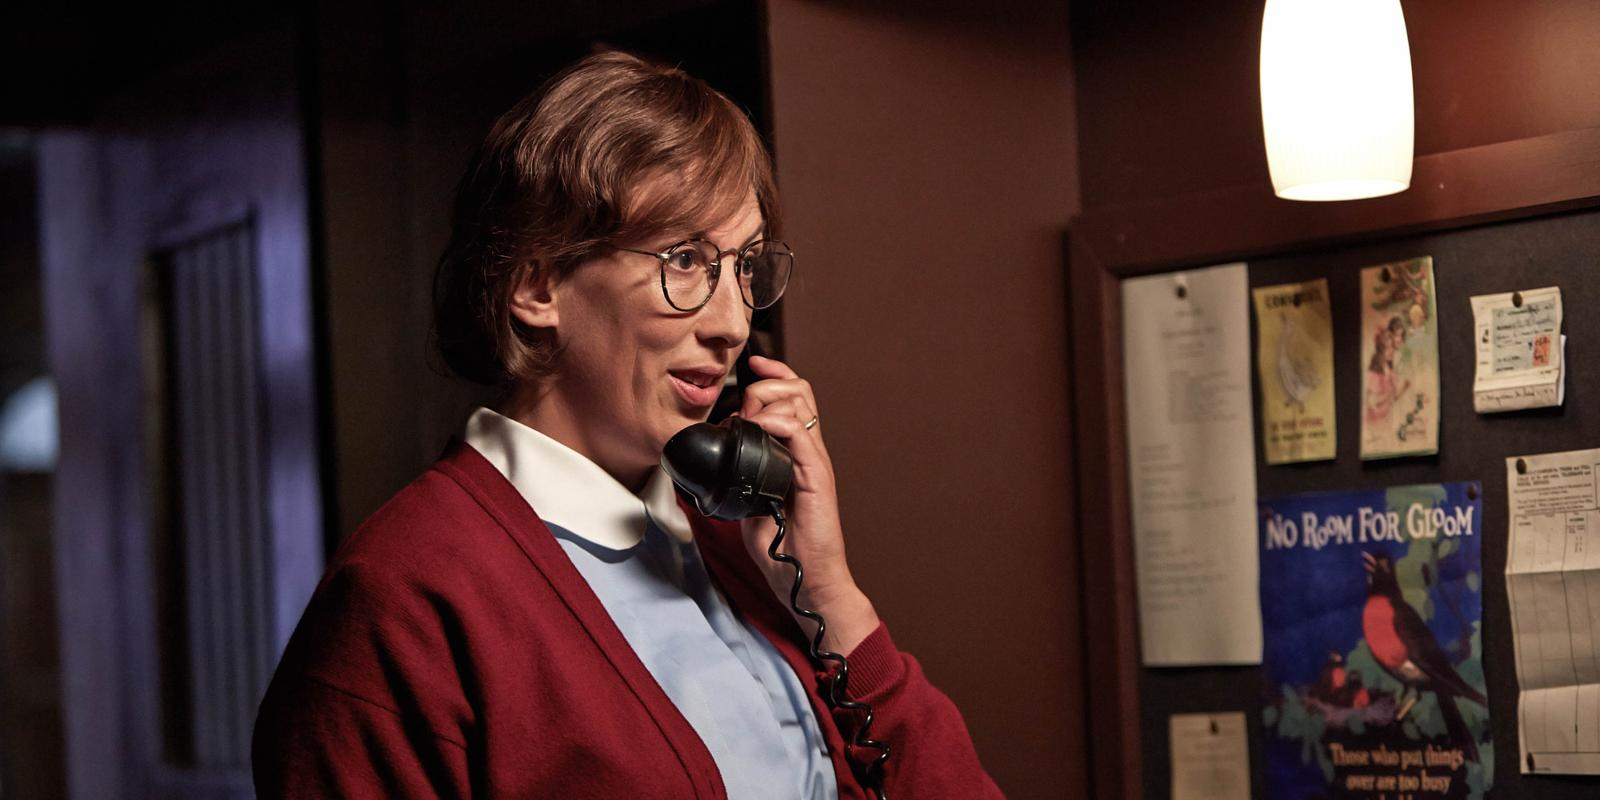 Watch Miranda in the new Call the Midwife series 4 trailer